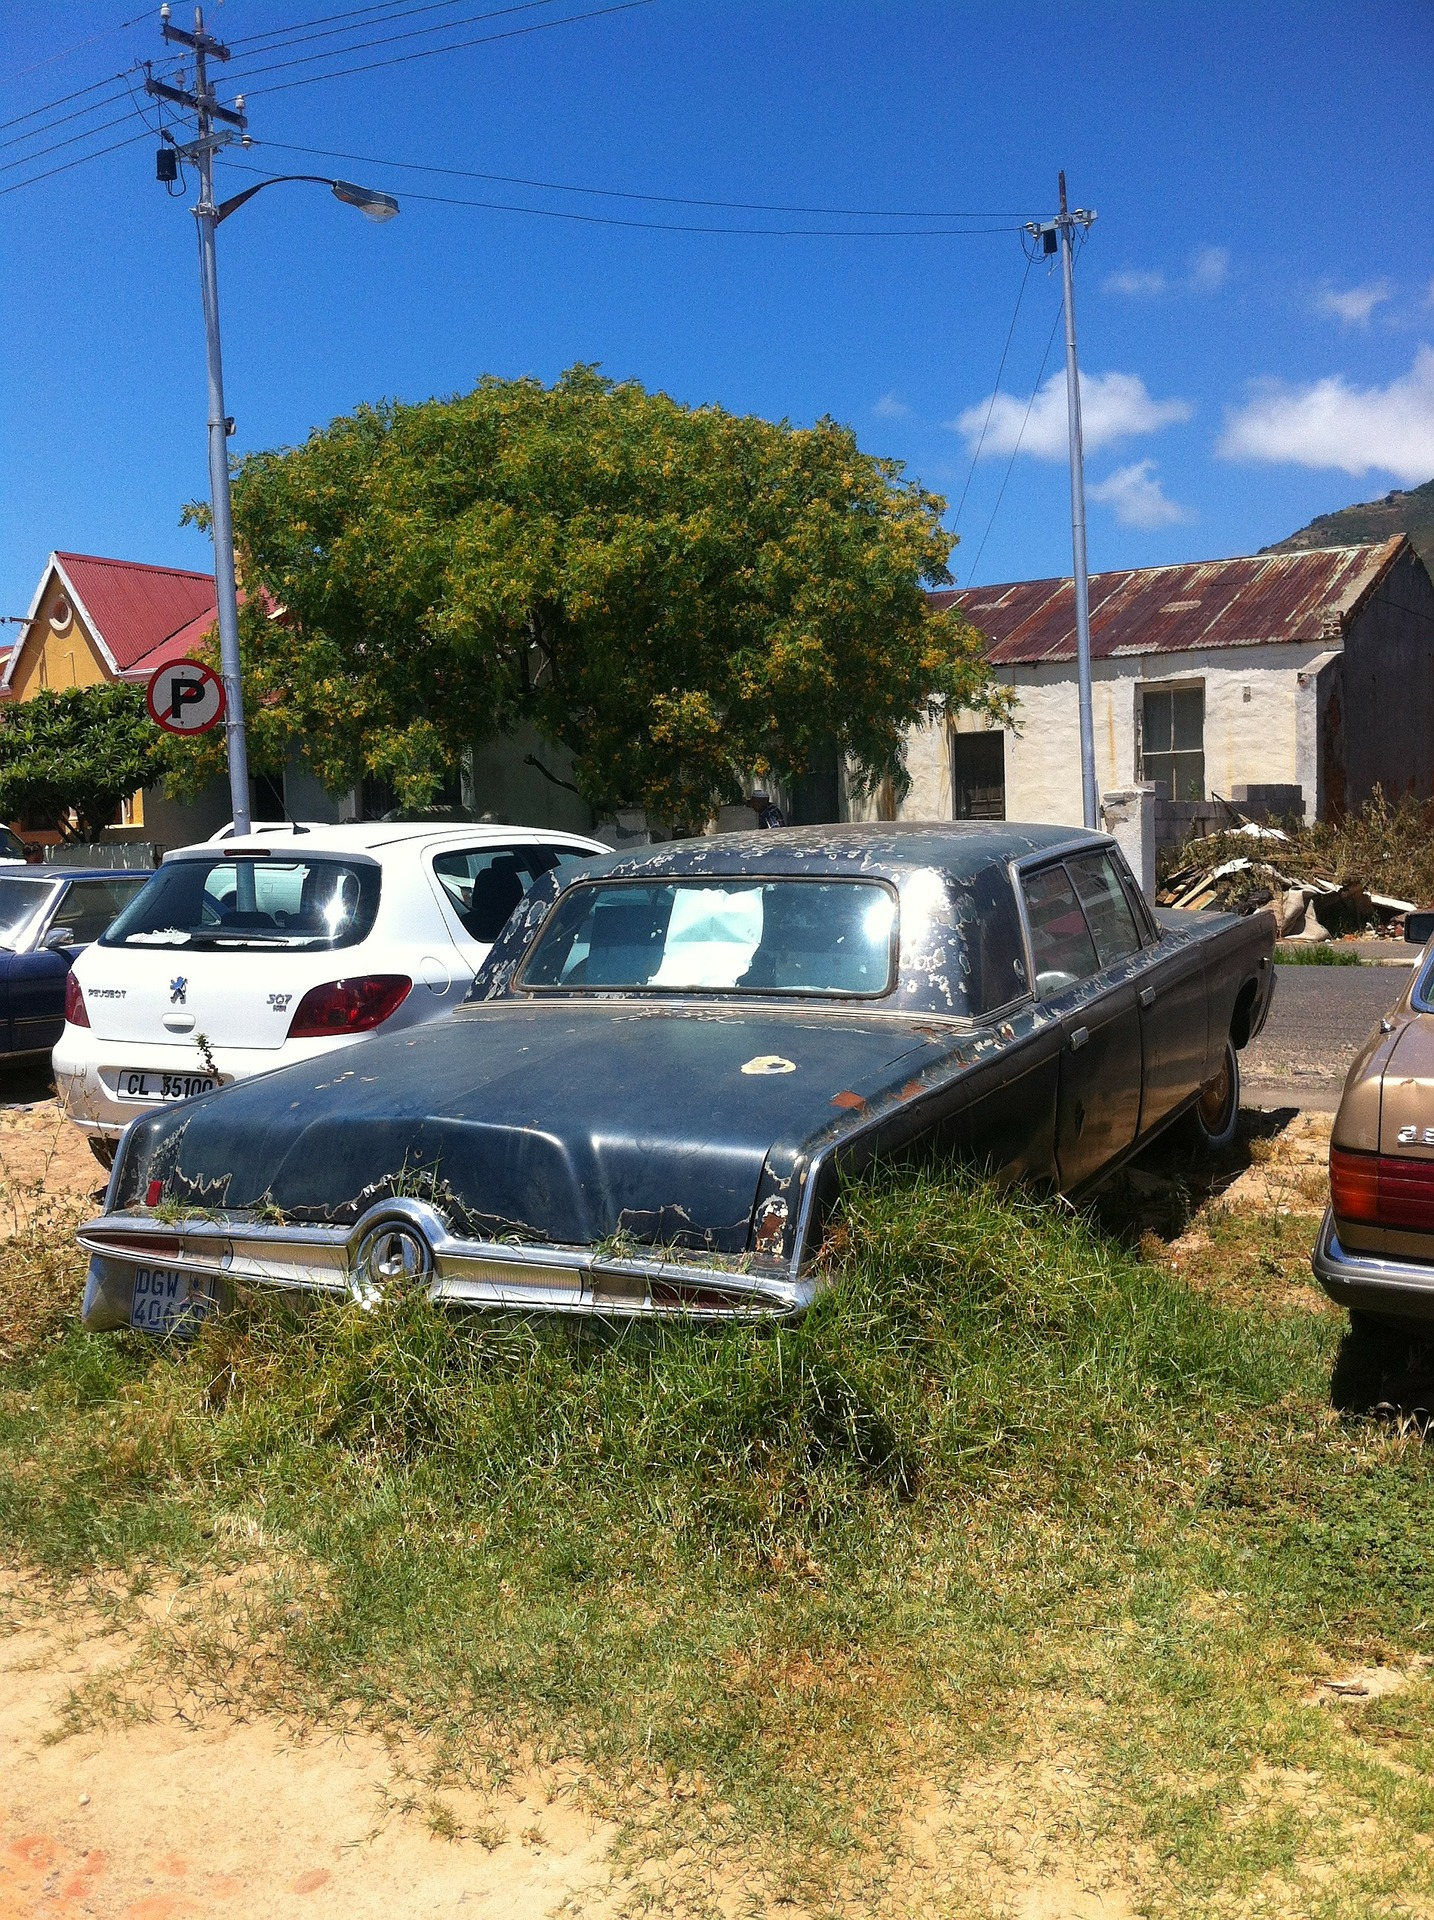 Cars for Scrap near Swampscott MA